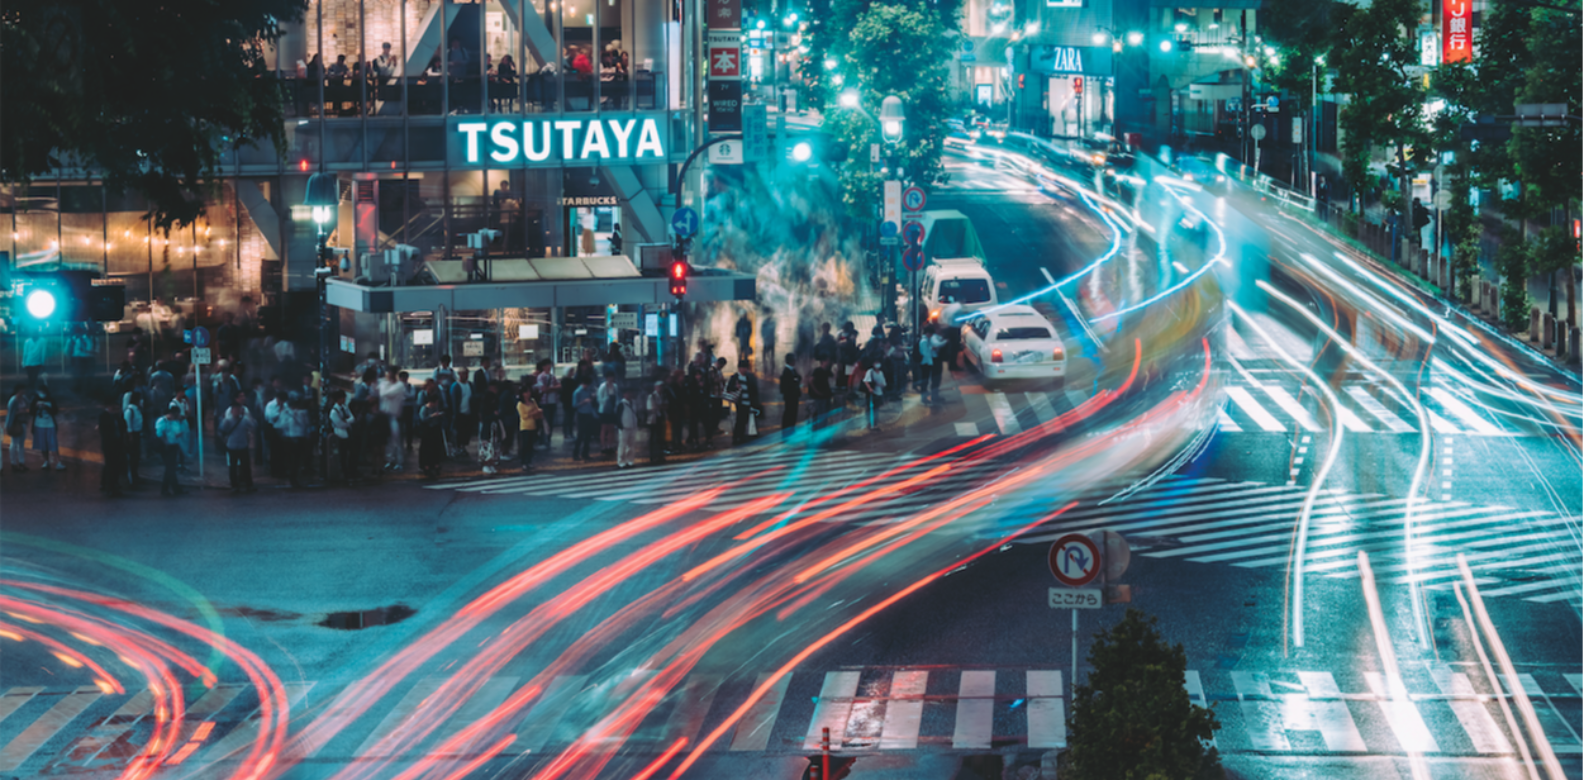 Shibuya Crossing in Tokyo during the night GFX50S by William Chua